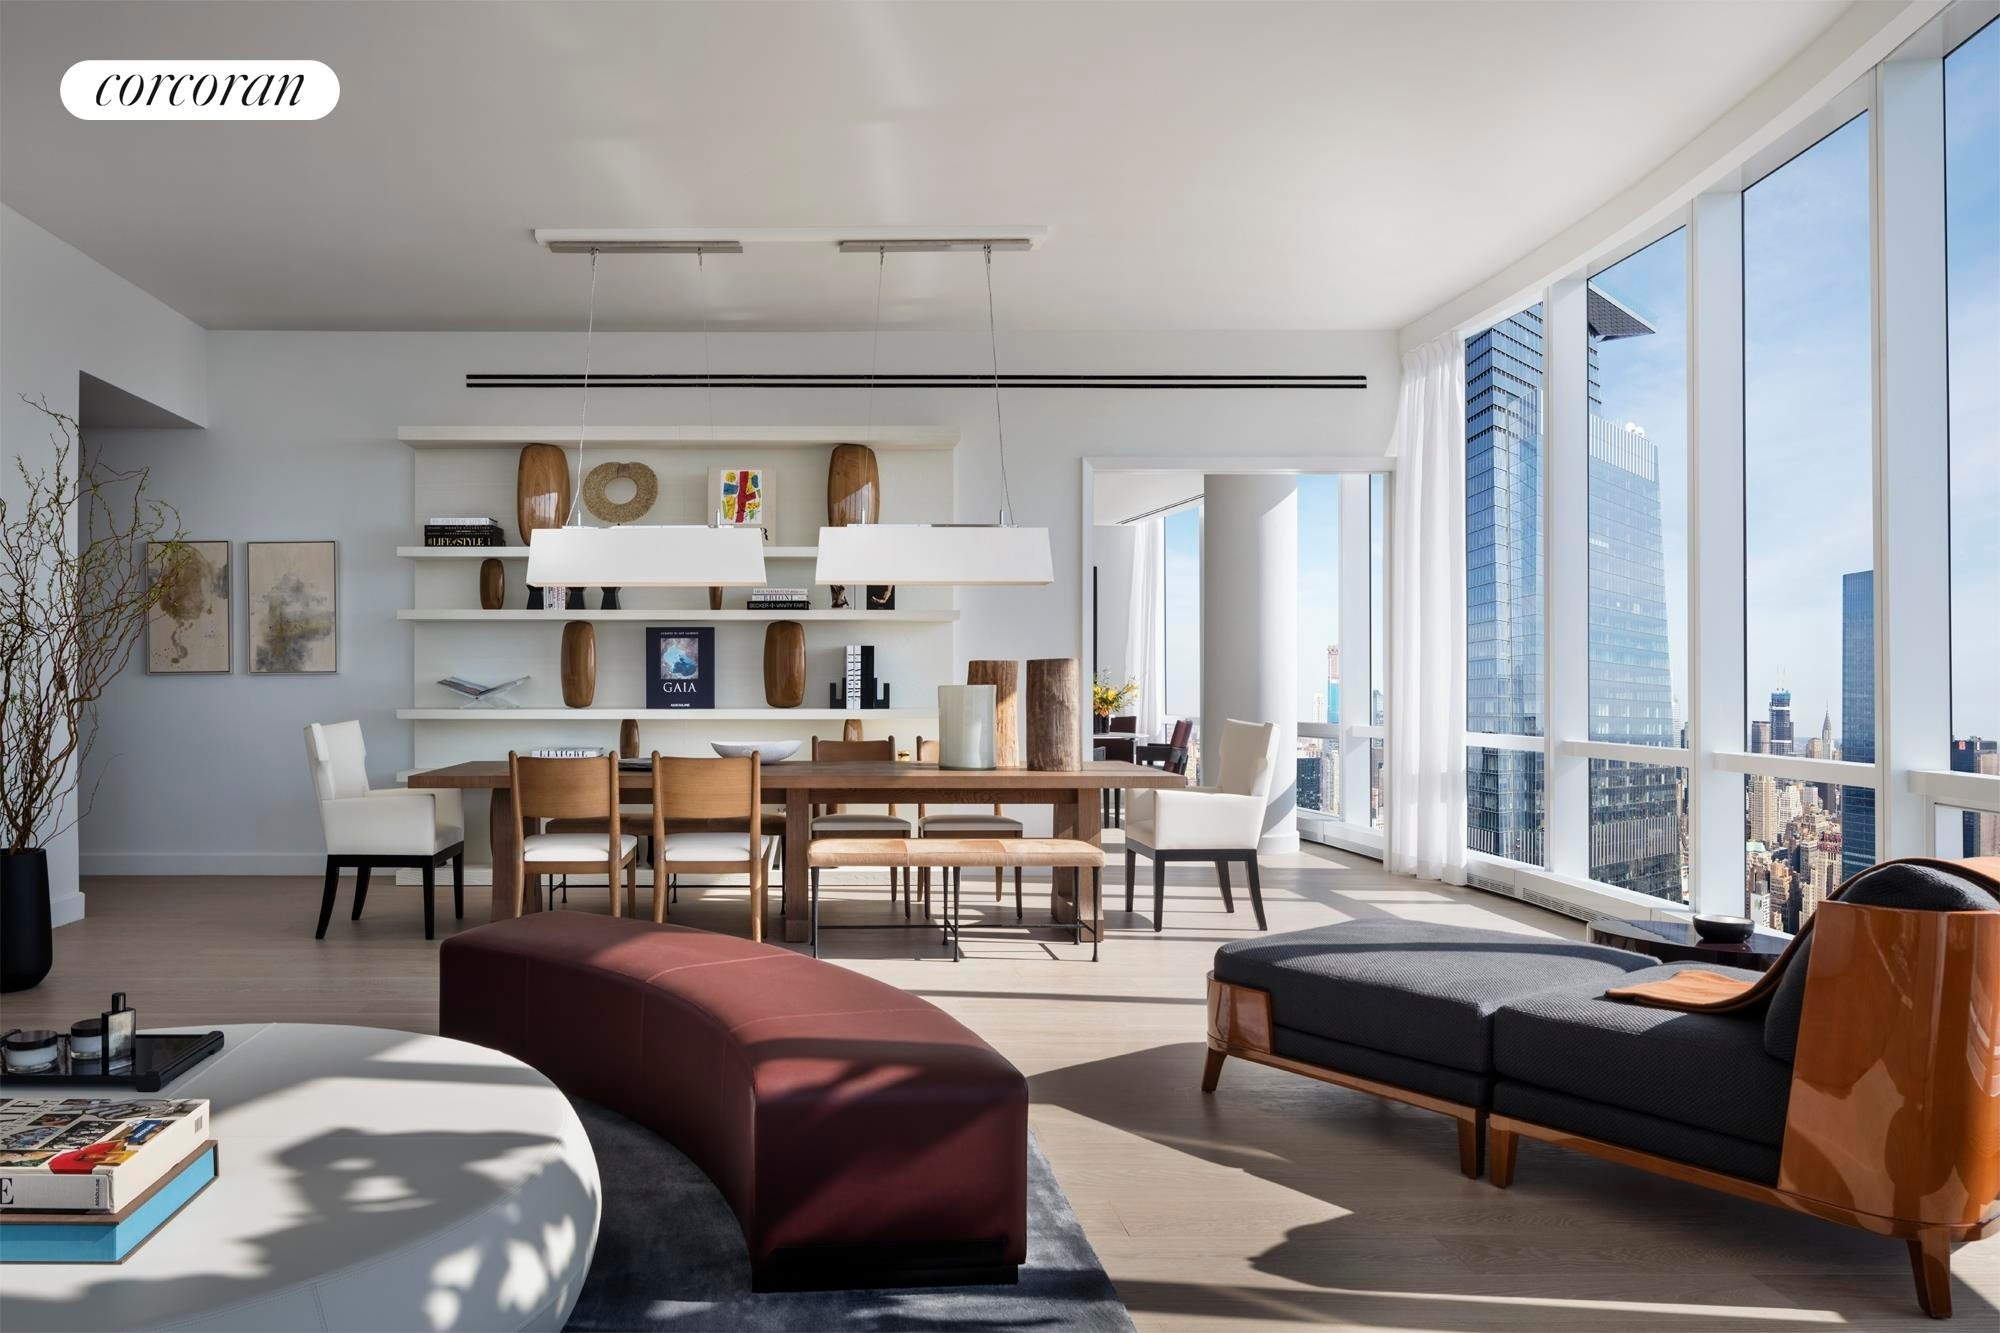 4. Condominiums for Sale at 15 Hudson Yards, 75B Hudson Yards, New York, NY 10001